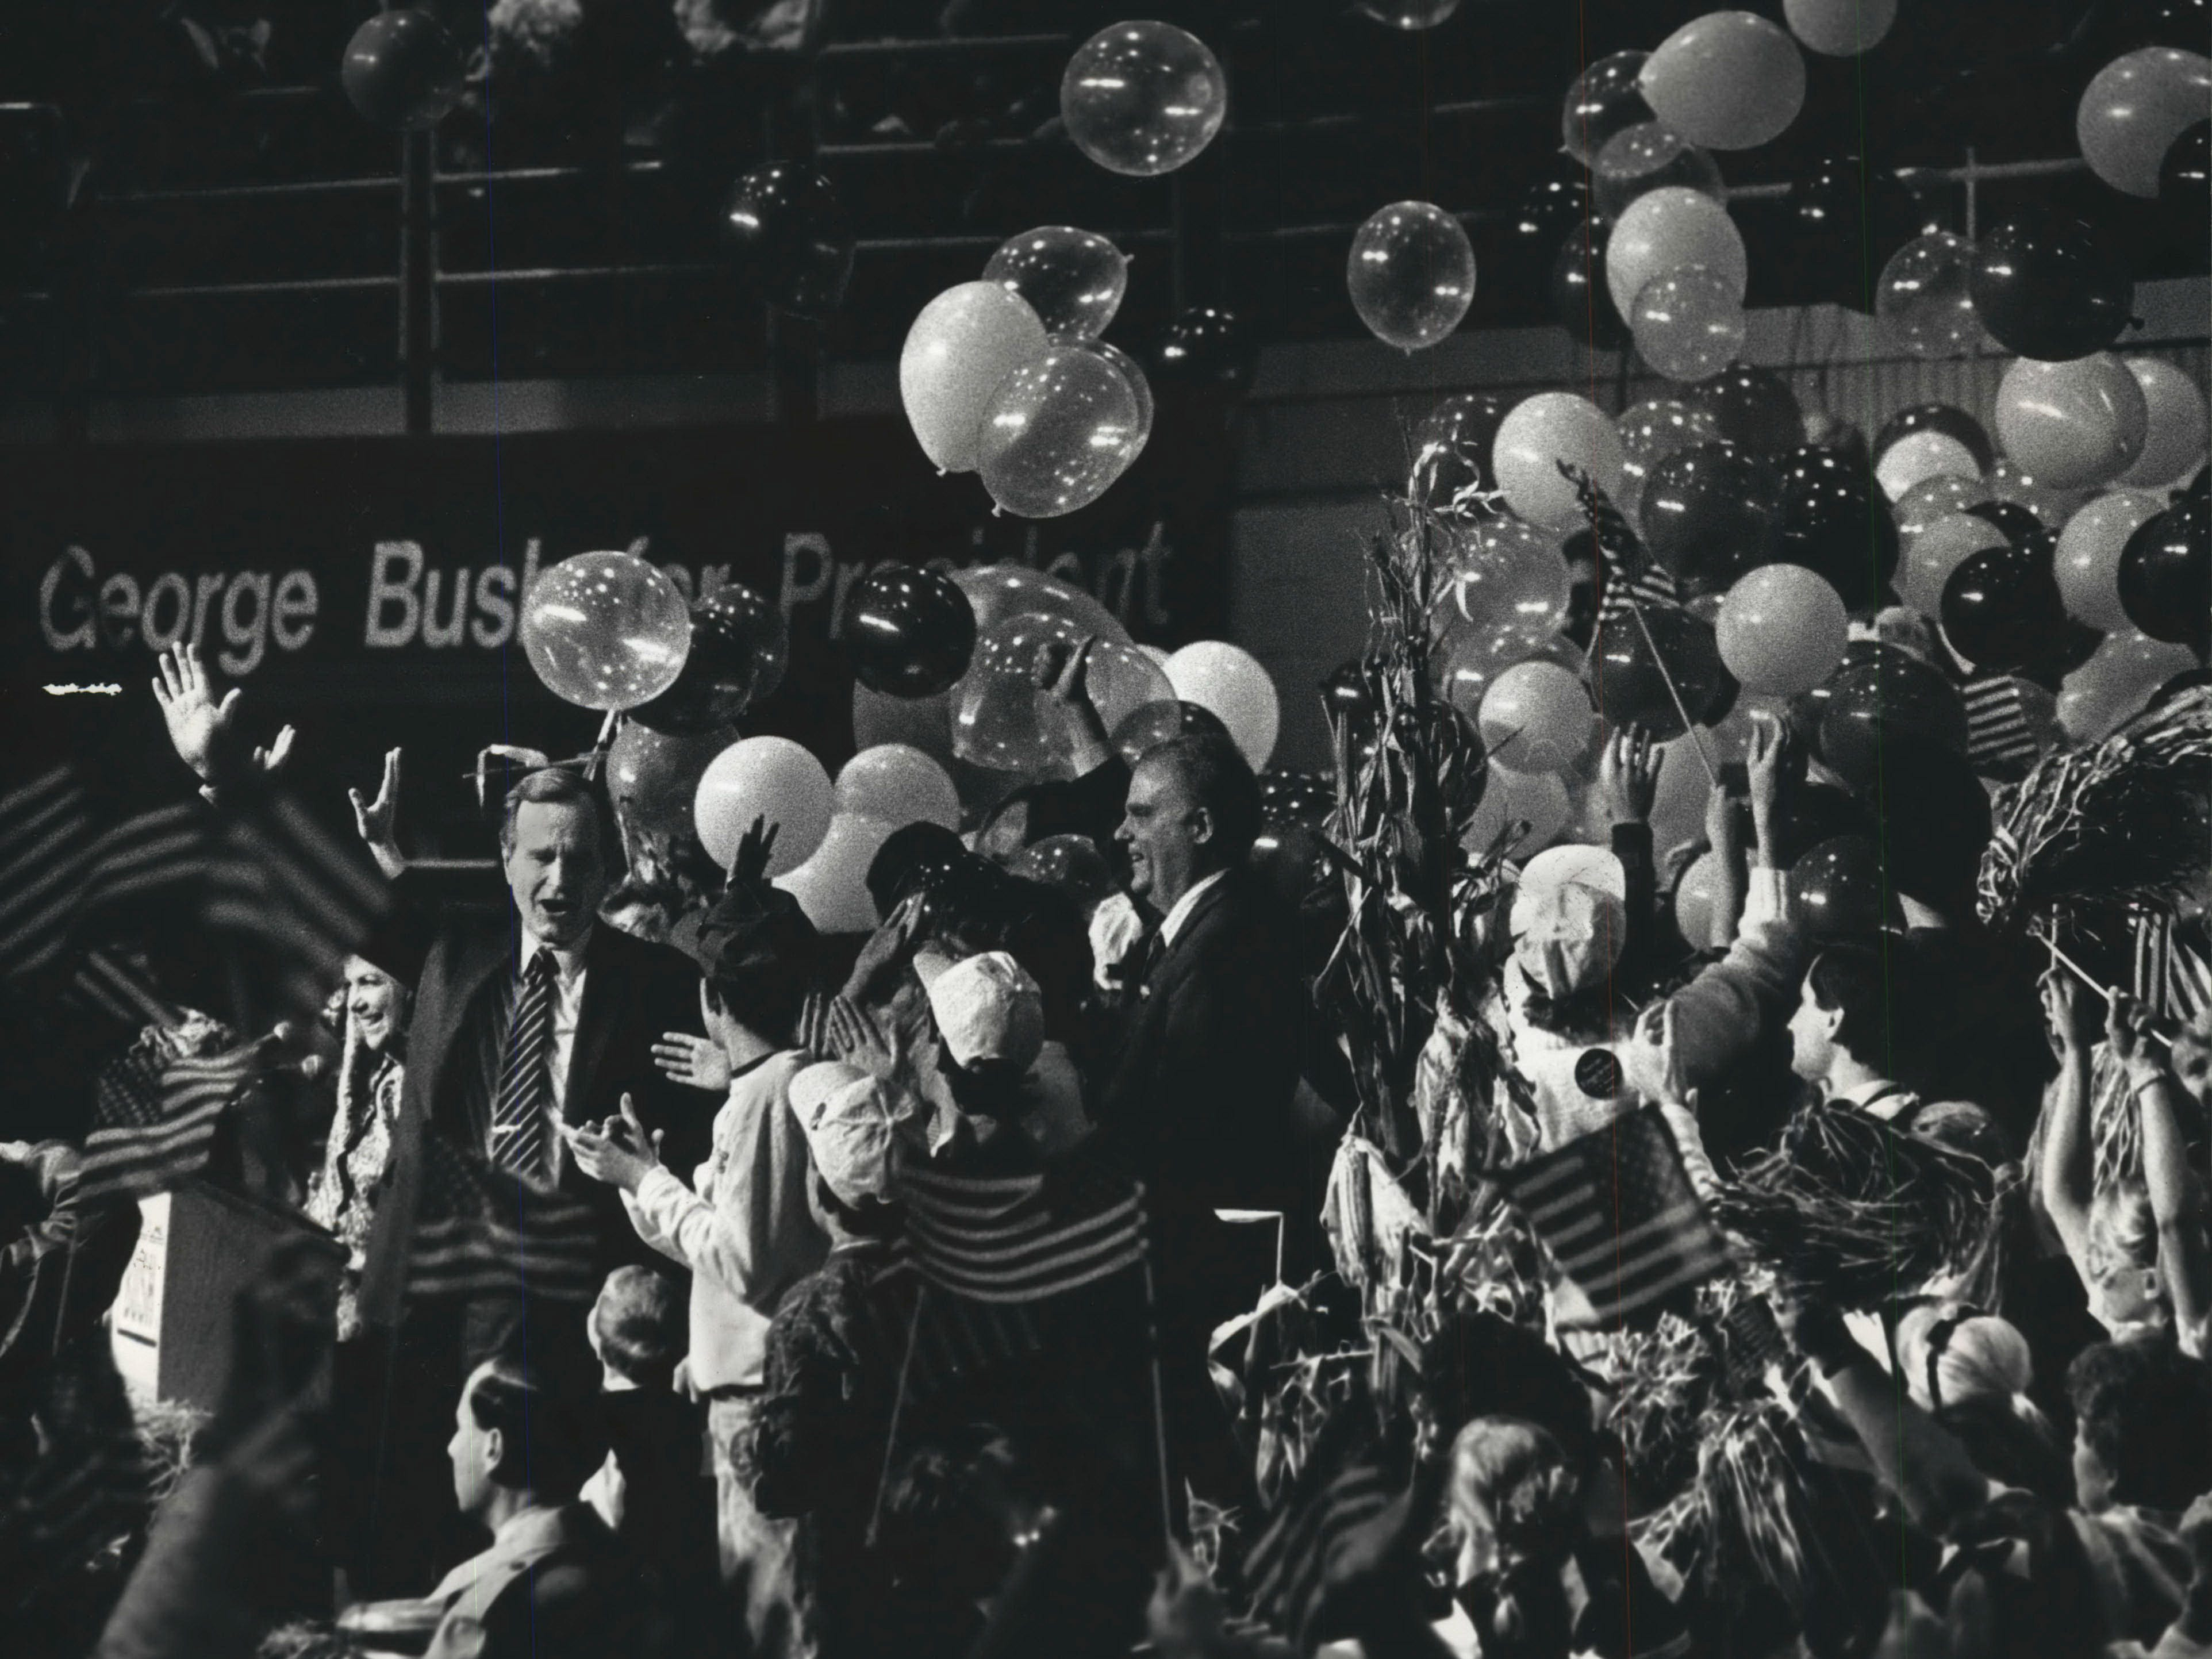 George Bush waved as balloon were launched at the Expo Centerin 1988.